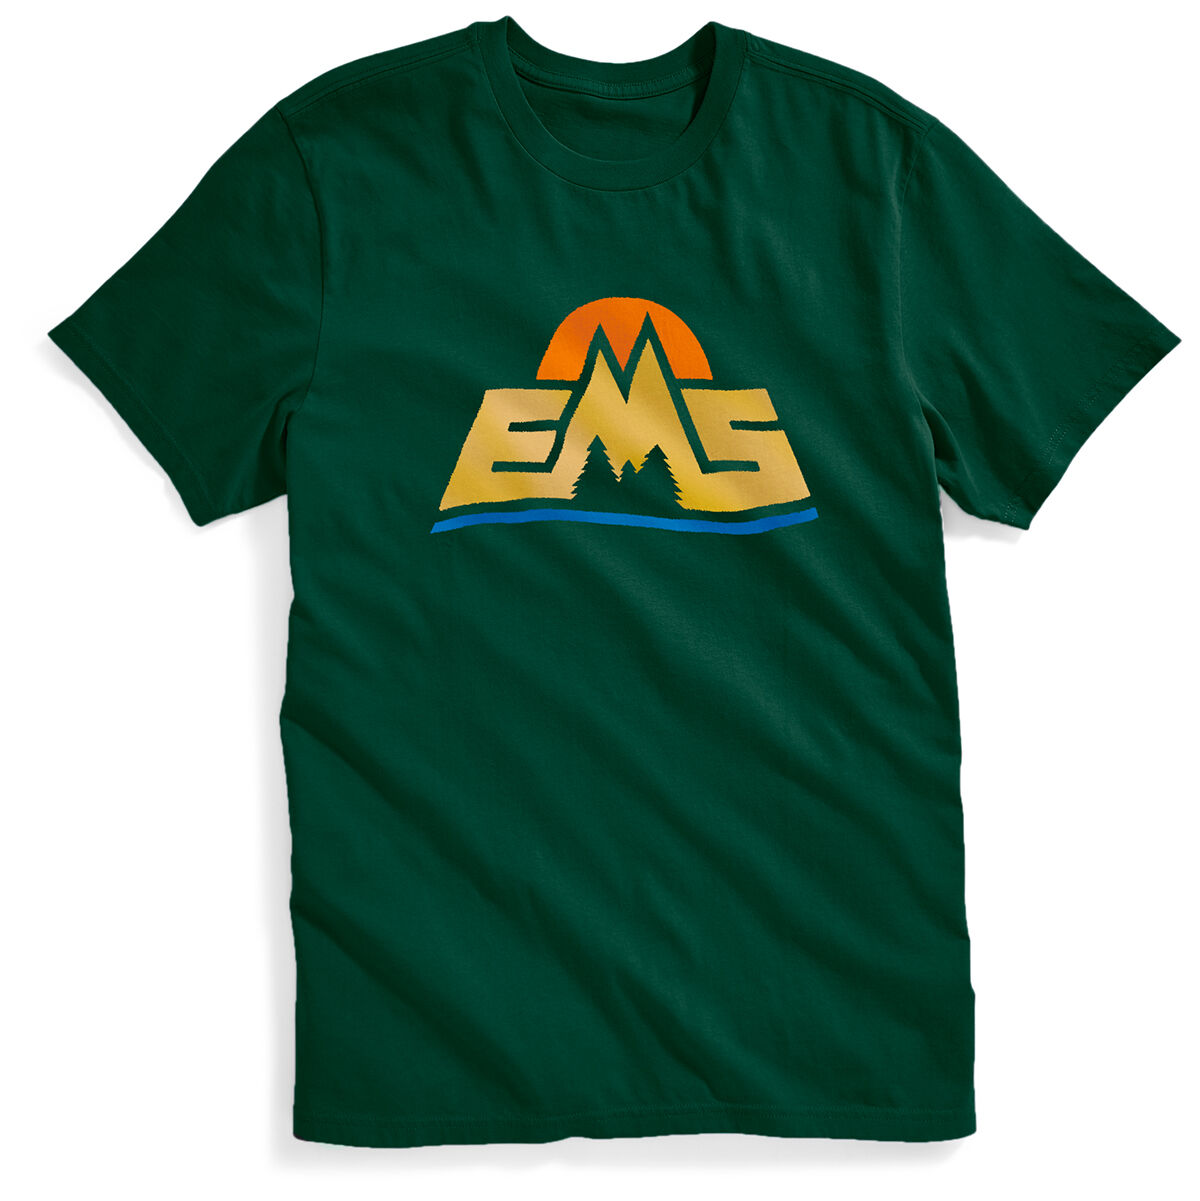 Ems Men's New Logo Short-Sleeve Graphic Tee - Green, L